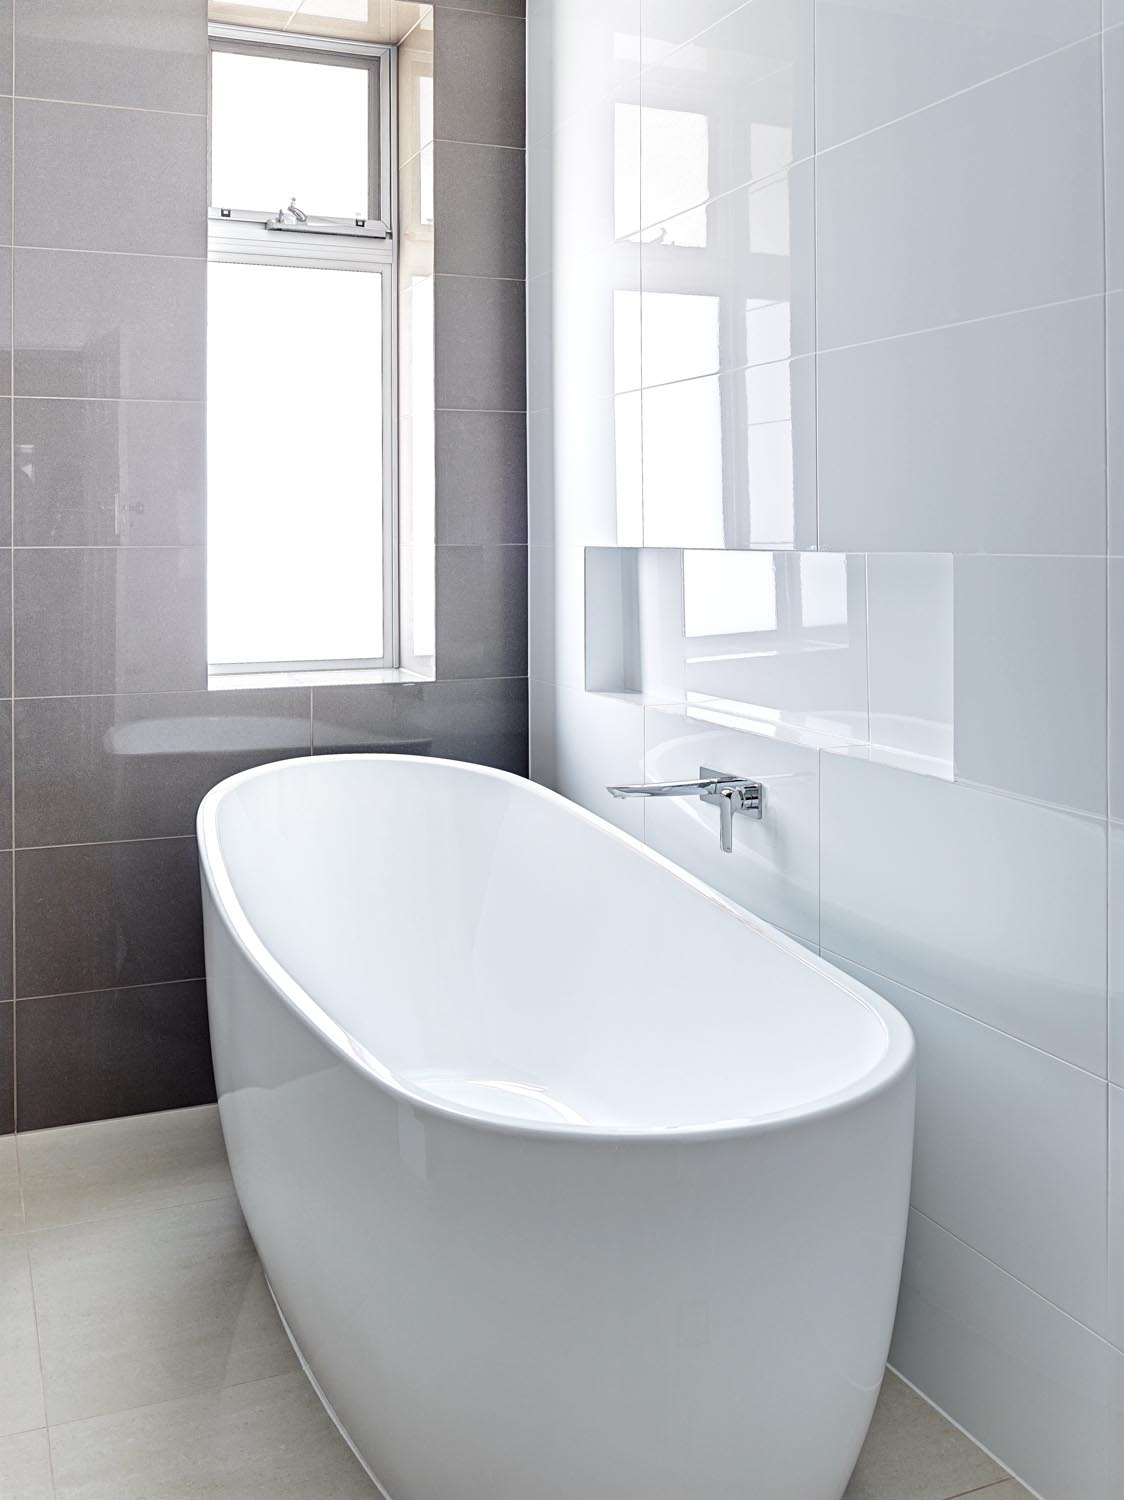 The dark, large-format tiles, with white gloss tiles for the side walls, creates a sense of grandeur